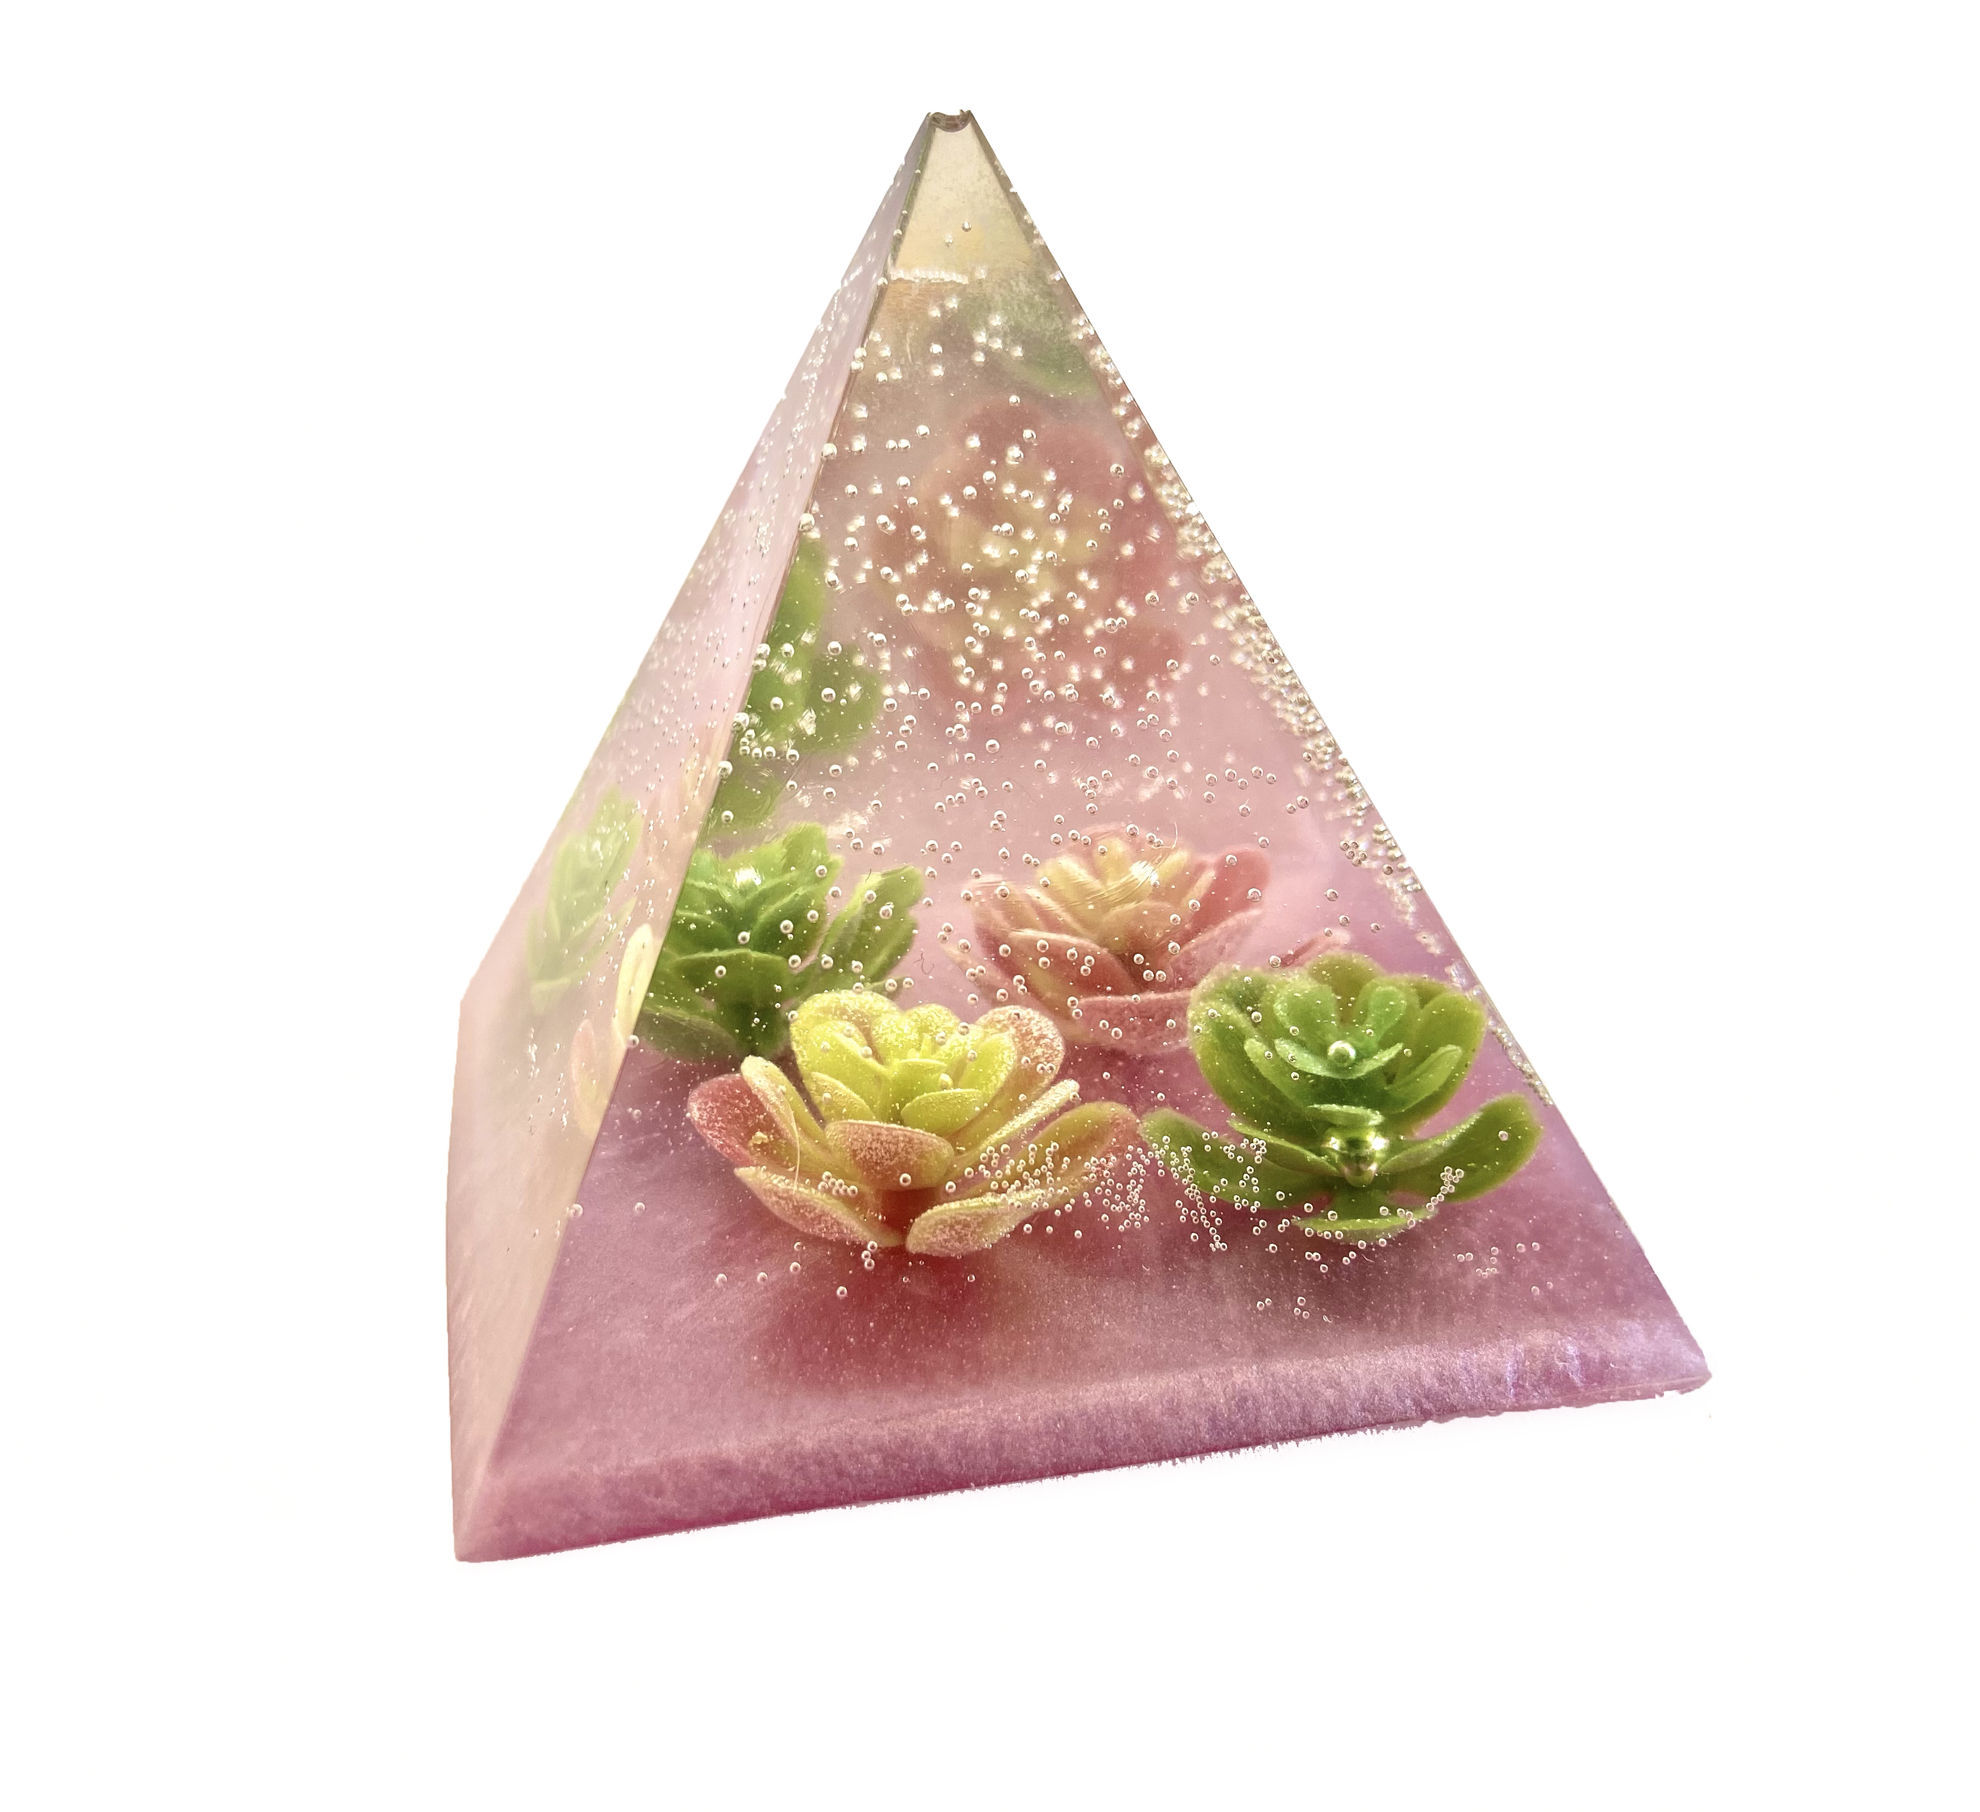 Succulent Small Pyramid by Spirited Pyramids